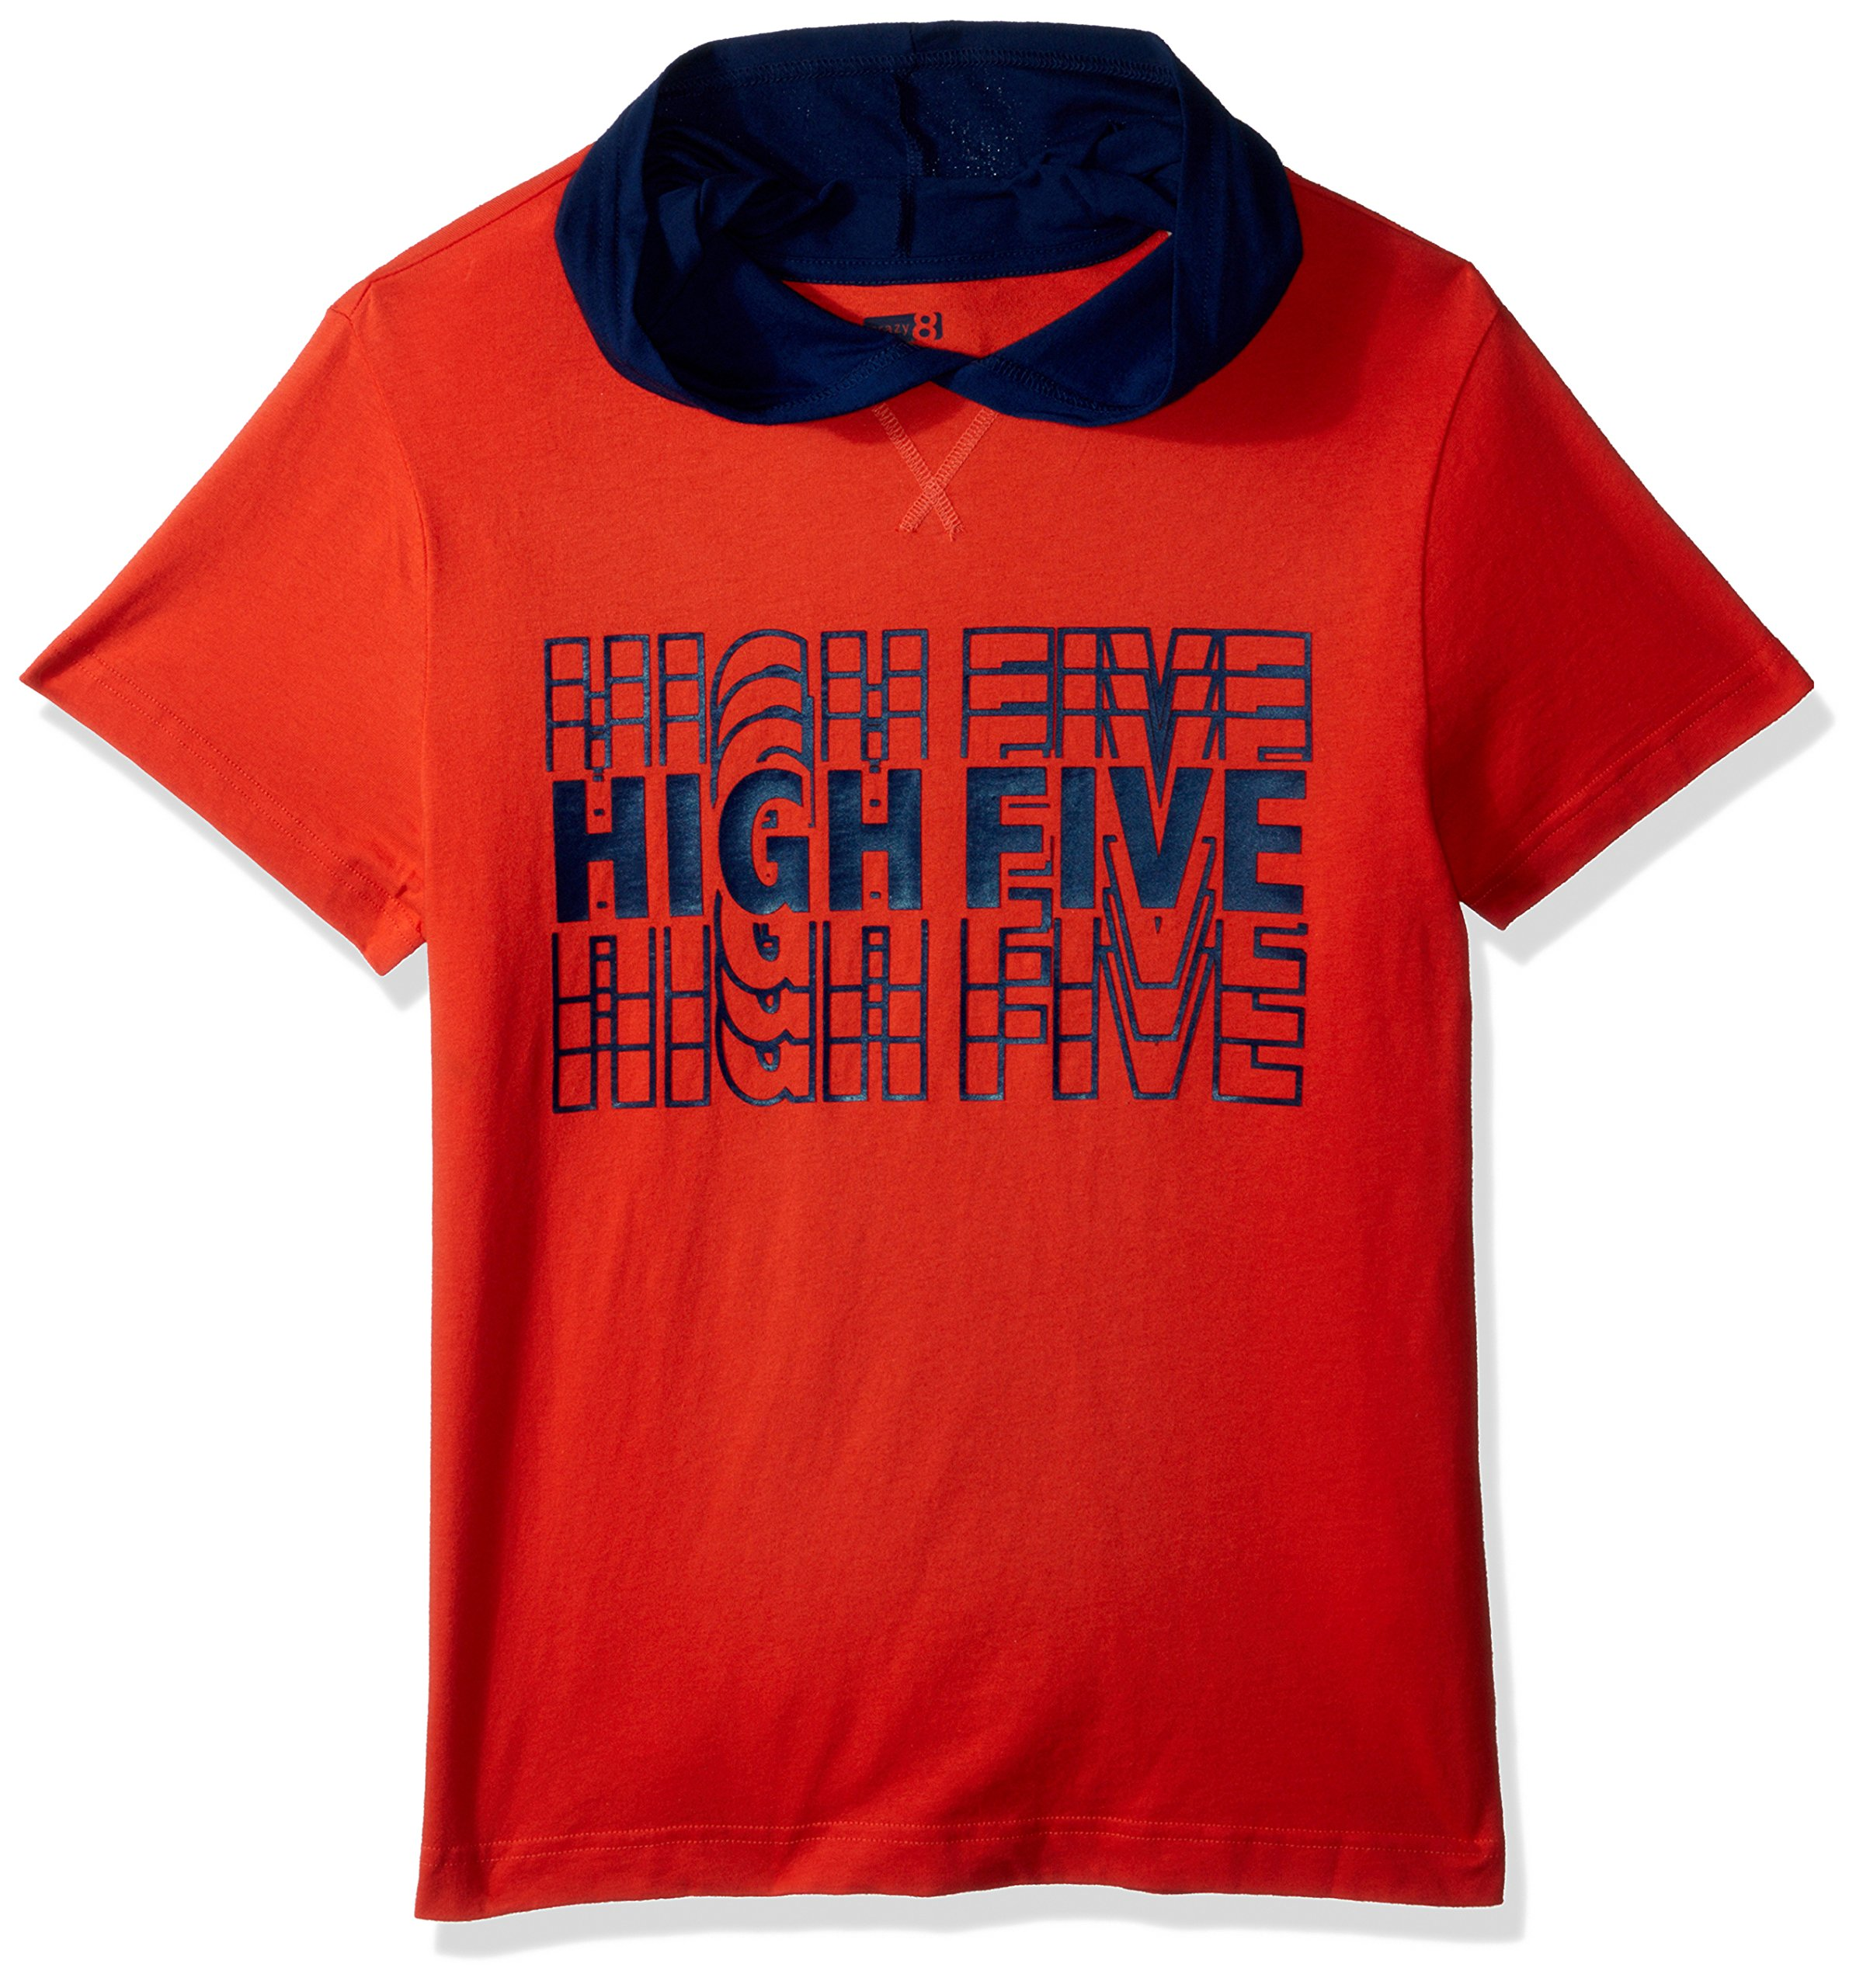 Crazy 8 Boys' Short Sleeve Hooded Tee, Orange High Five, Little Kid